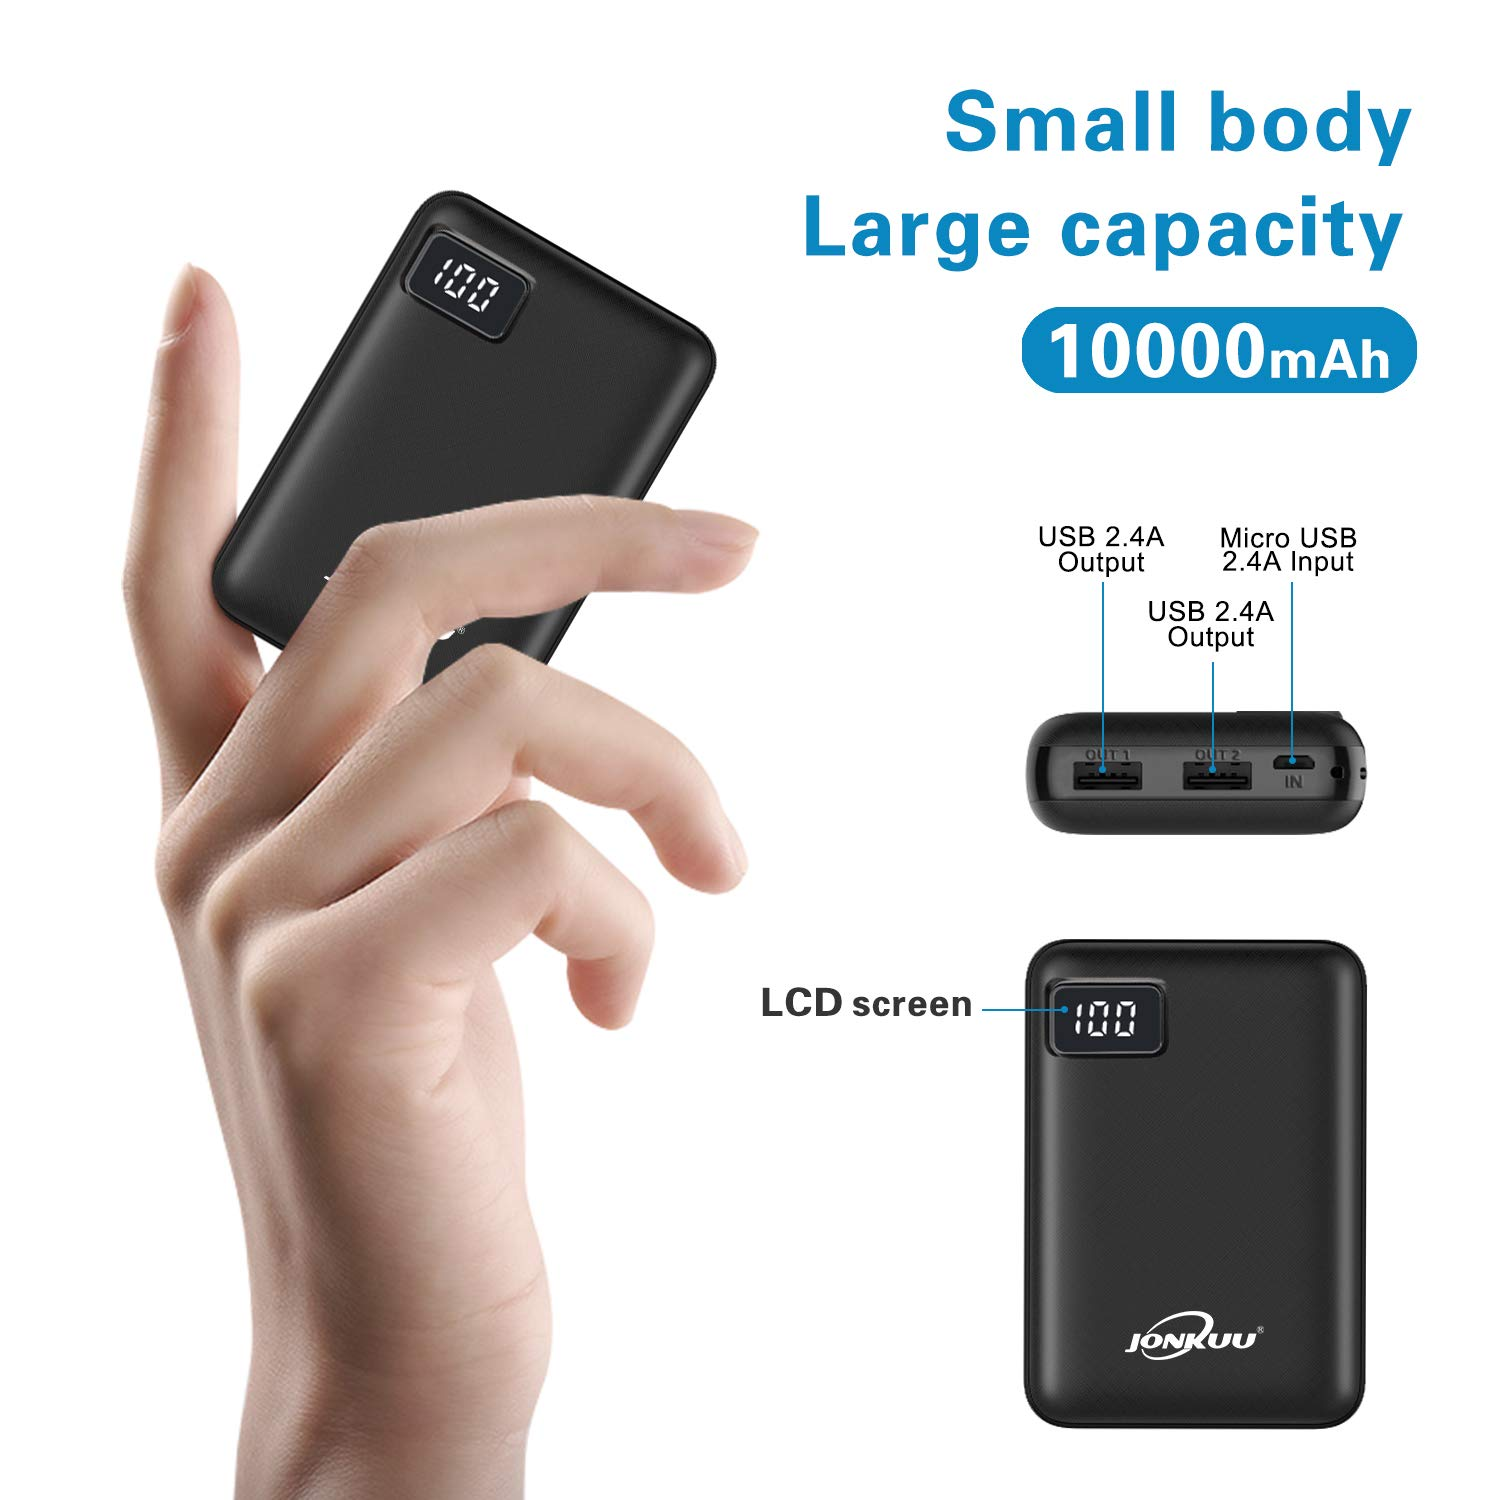 Portable Phone Charger 10000mAh Quick Charge 2.4 A Power Bank External Battery Packs Dual Ports with LCD Display Powerpack Compatible for iPhone Huawei iPad Samsung Galaxy Nintendo Switch (Black) by JONKUU